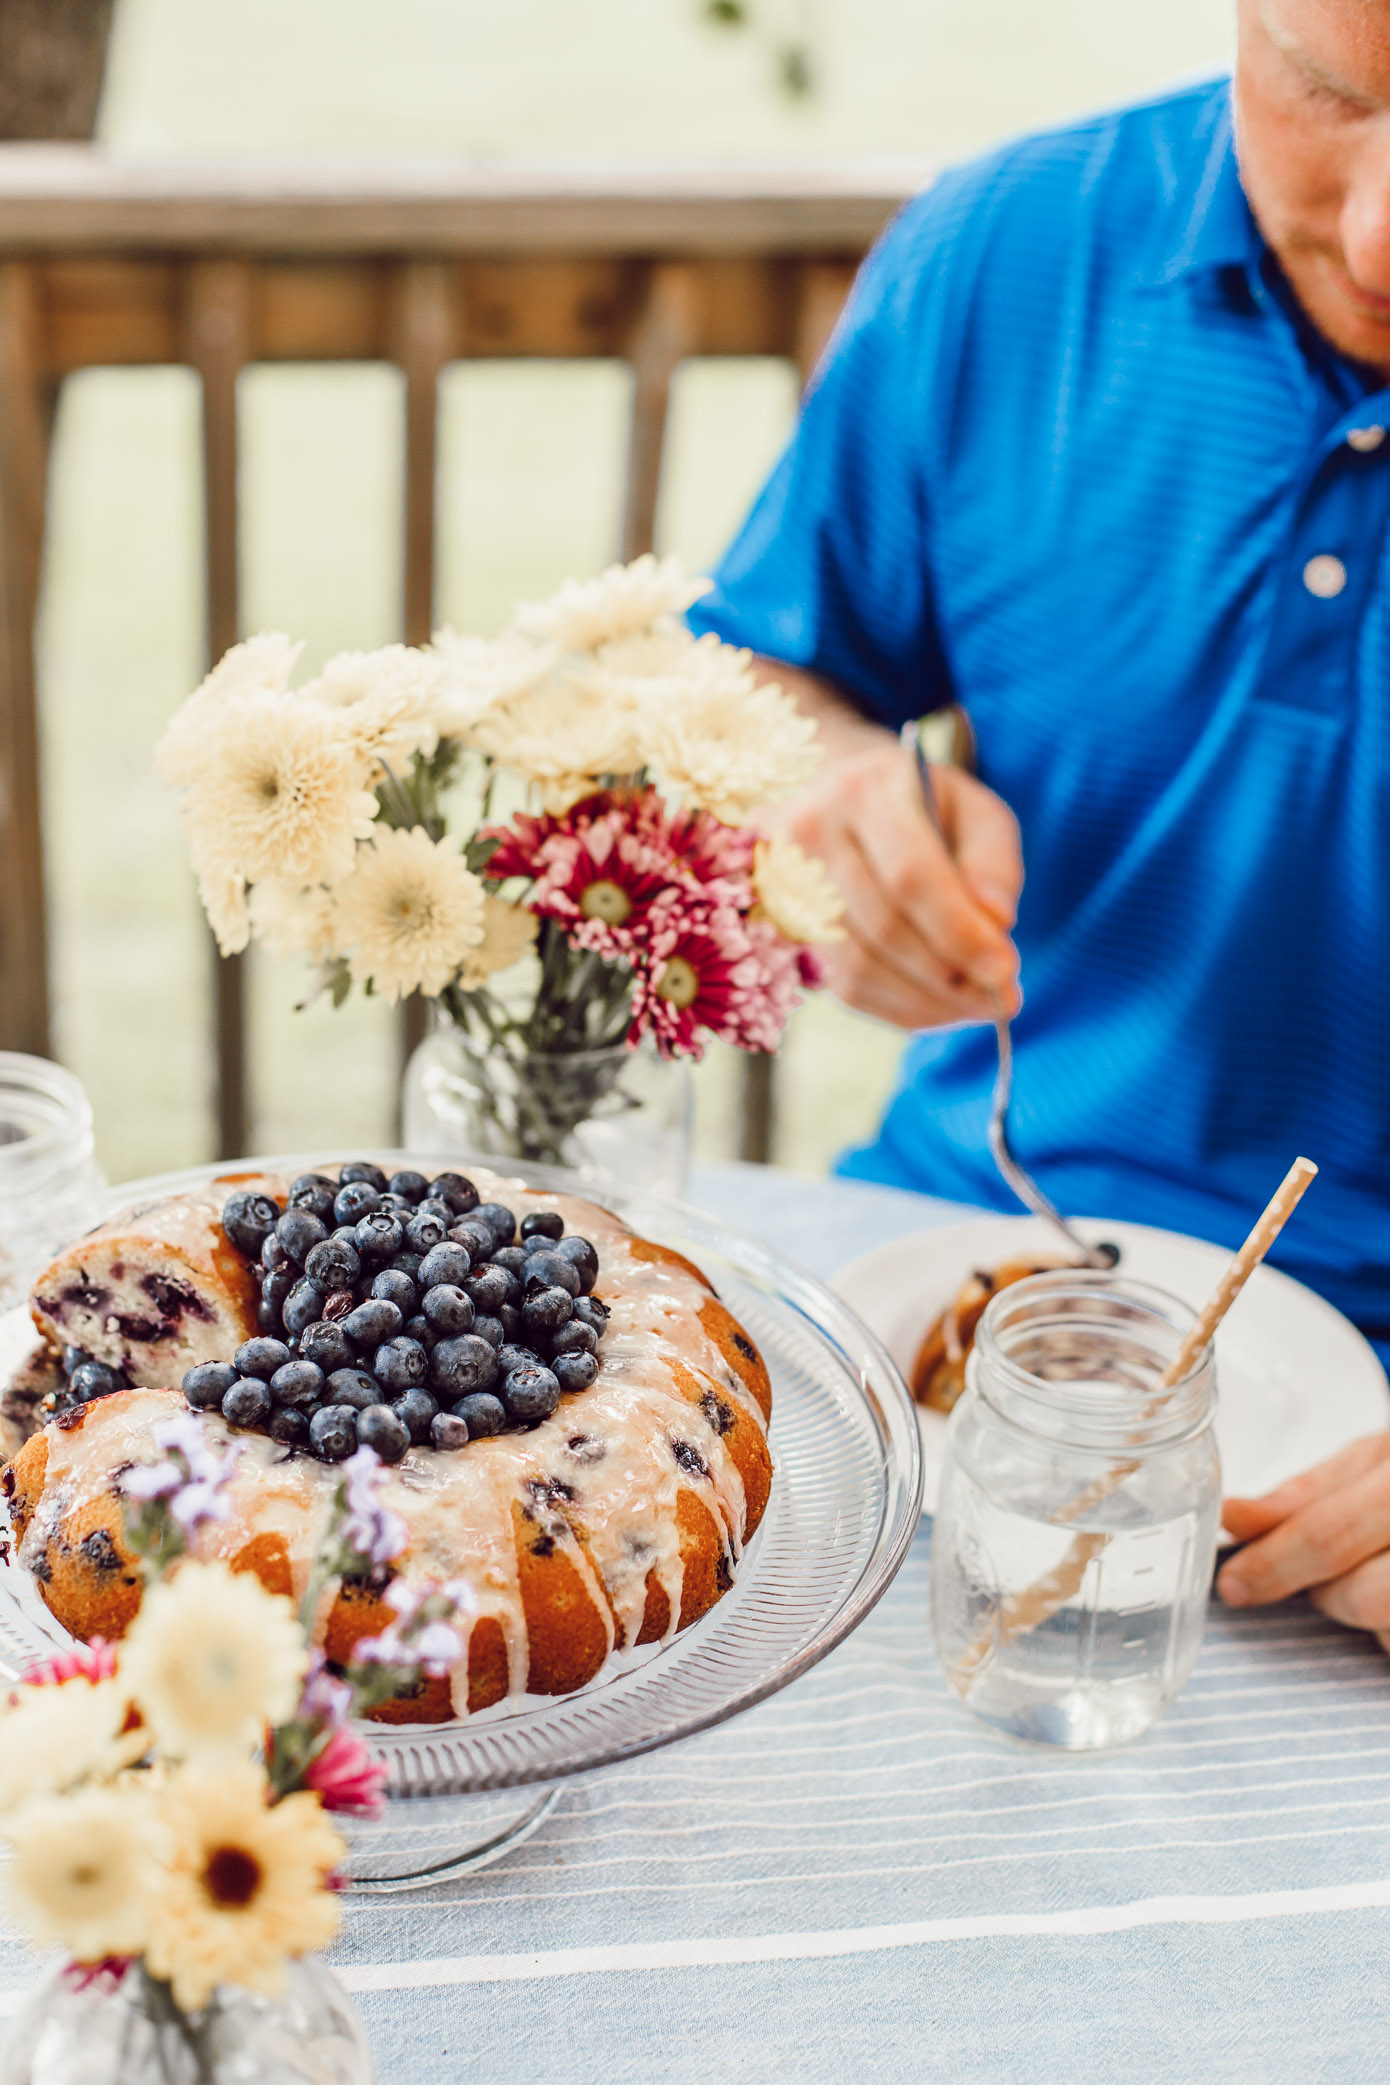 What to Bring to a Fourth of July Cookout, What to Bring to a 4th of July Party | Louella Reese